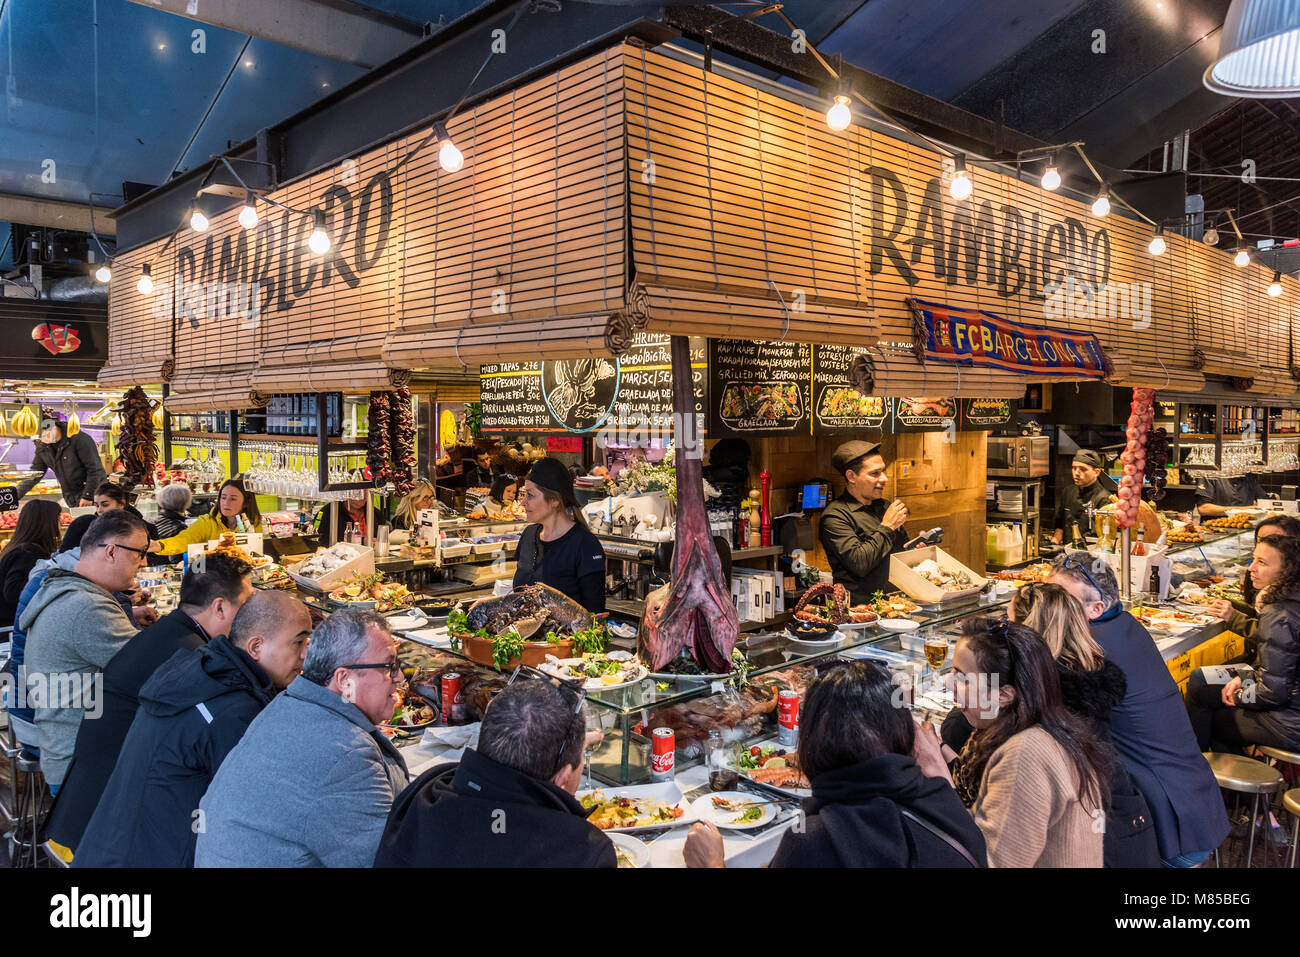 Tourists eating in a tapas bar at Boqueria market, Barcelona, Catalonia, Spain - Stock Image